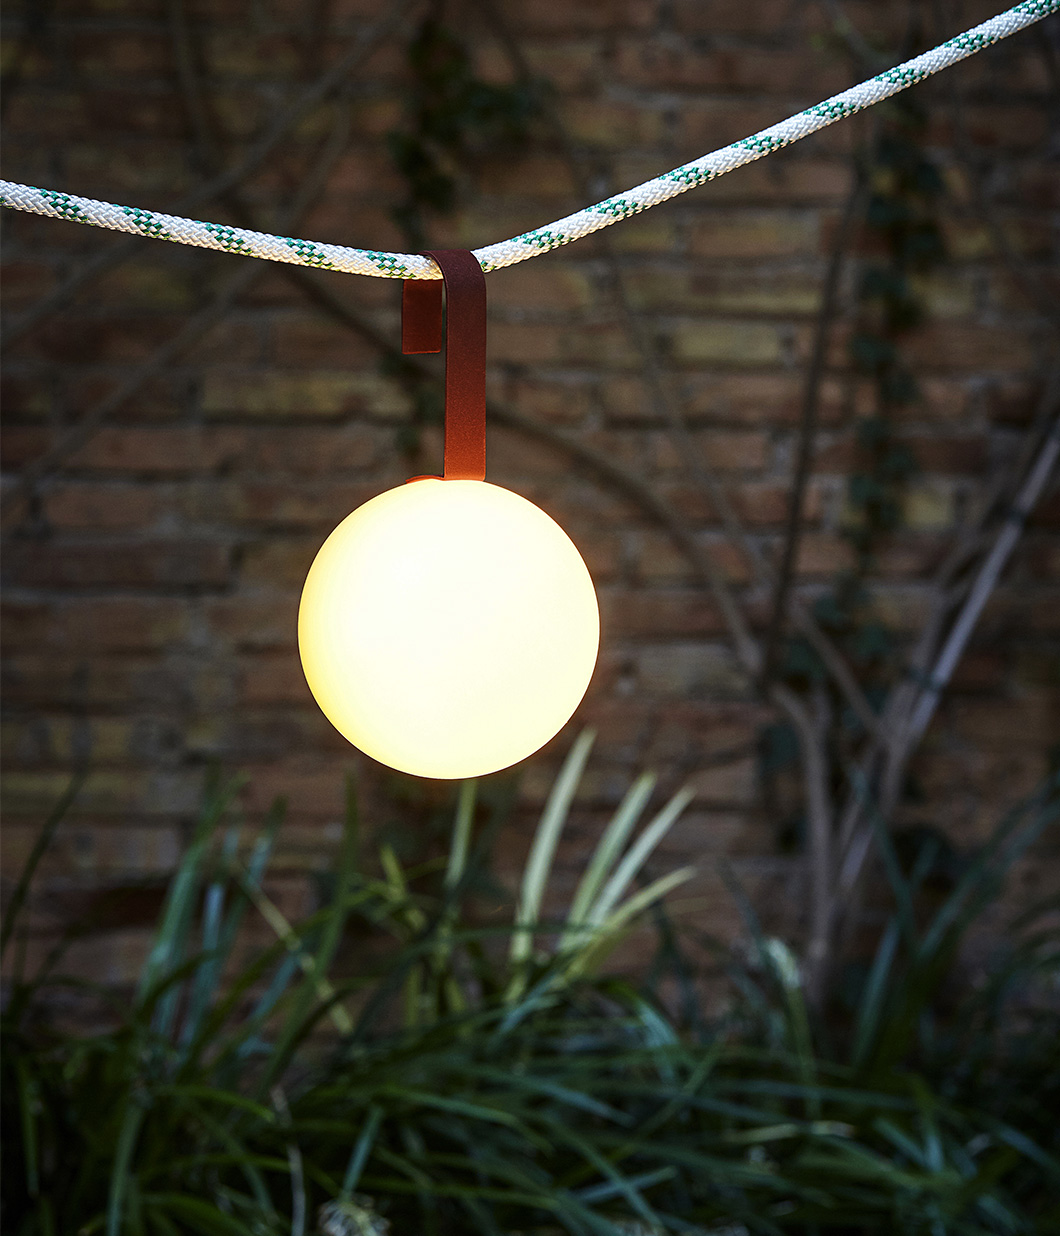 Outdoor Decorative Lamps Primary Image 02